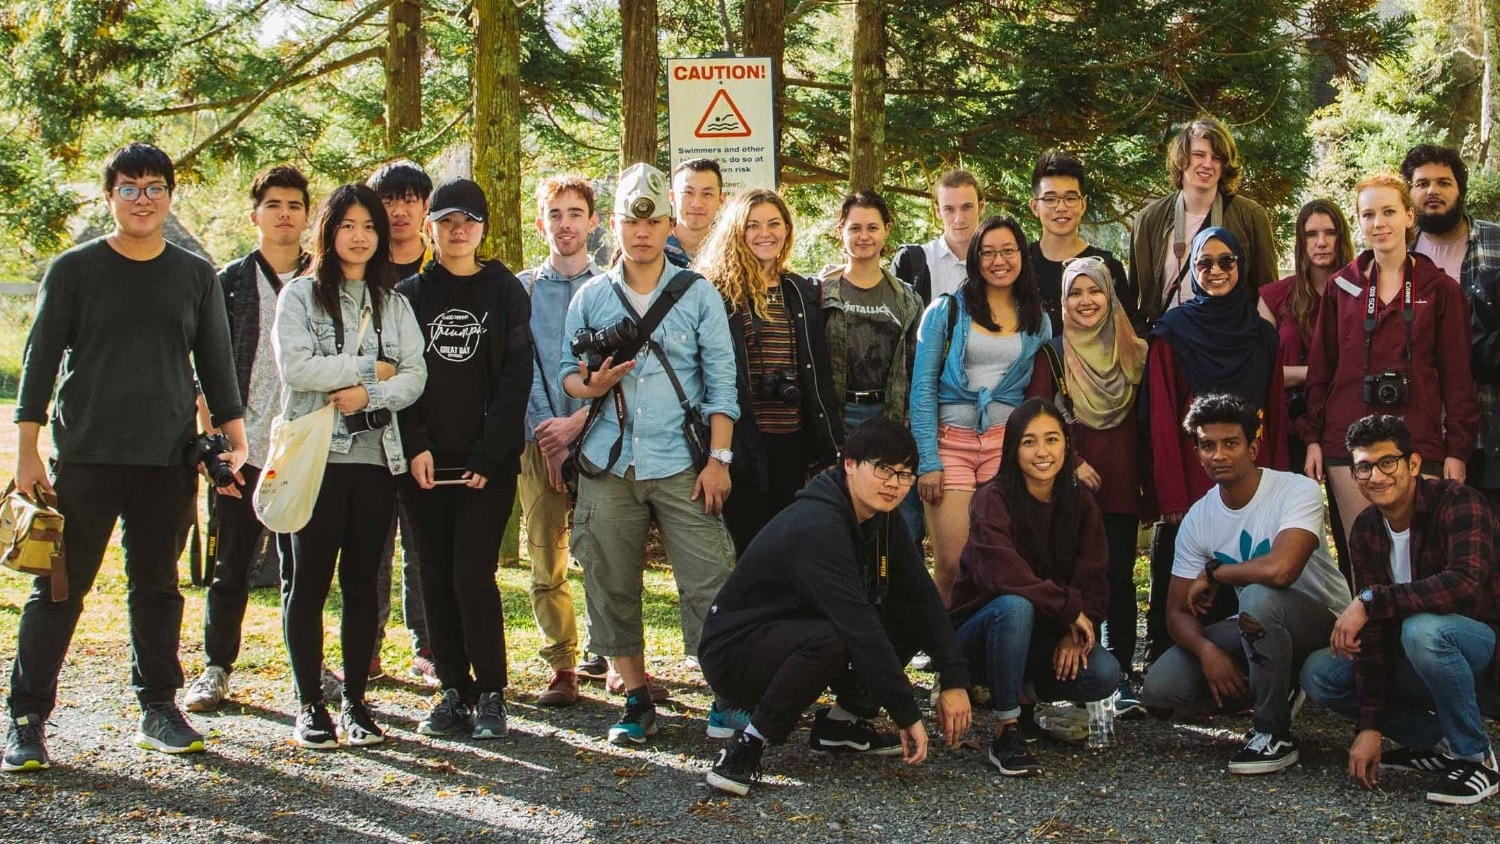 Field Trips - We love road trips! Get to know other photographers and take photos together while exploring New Zealand.